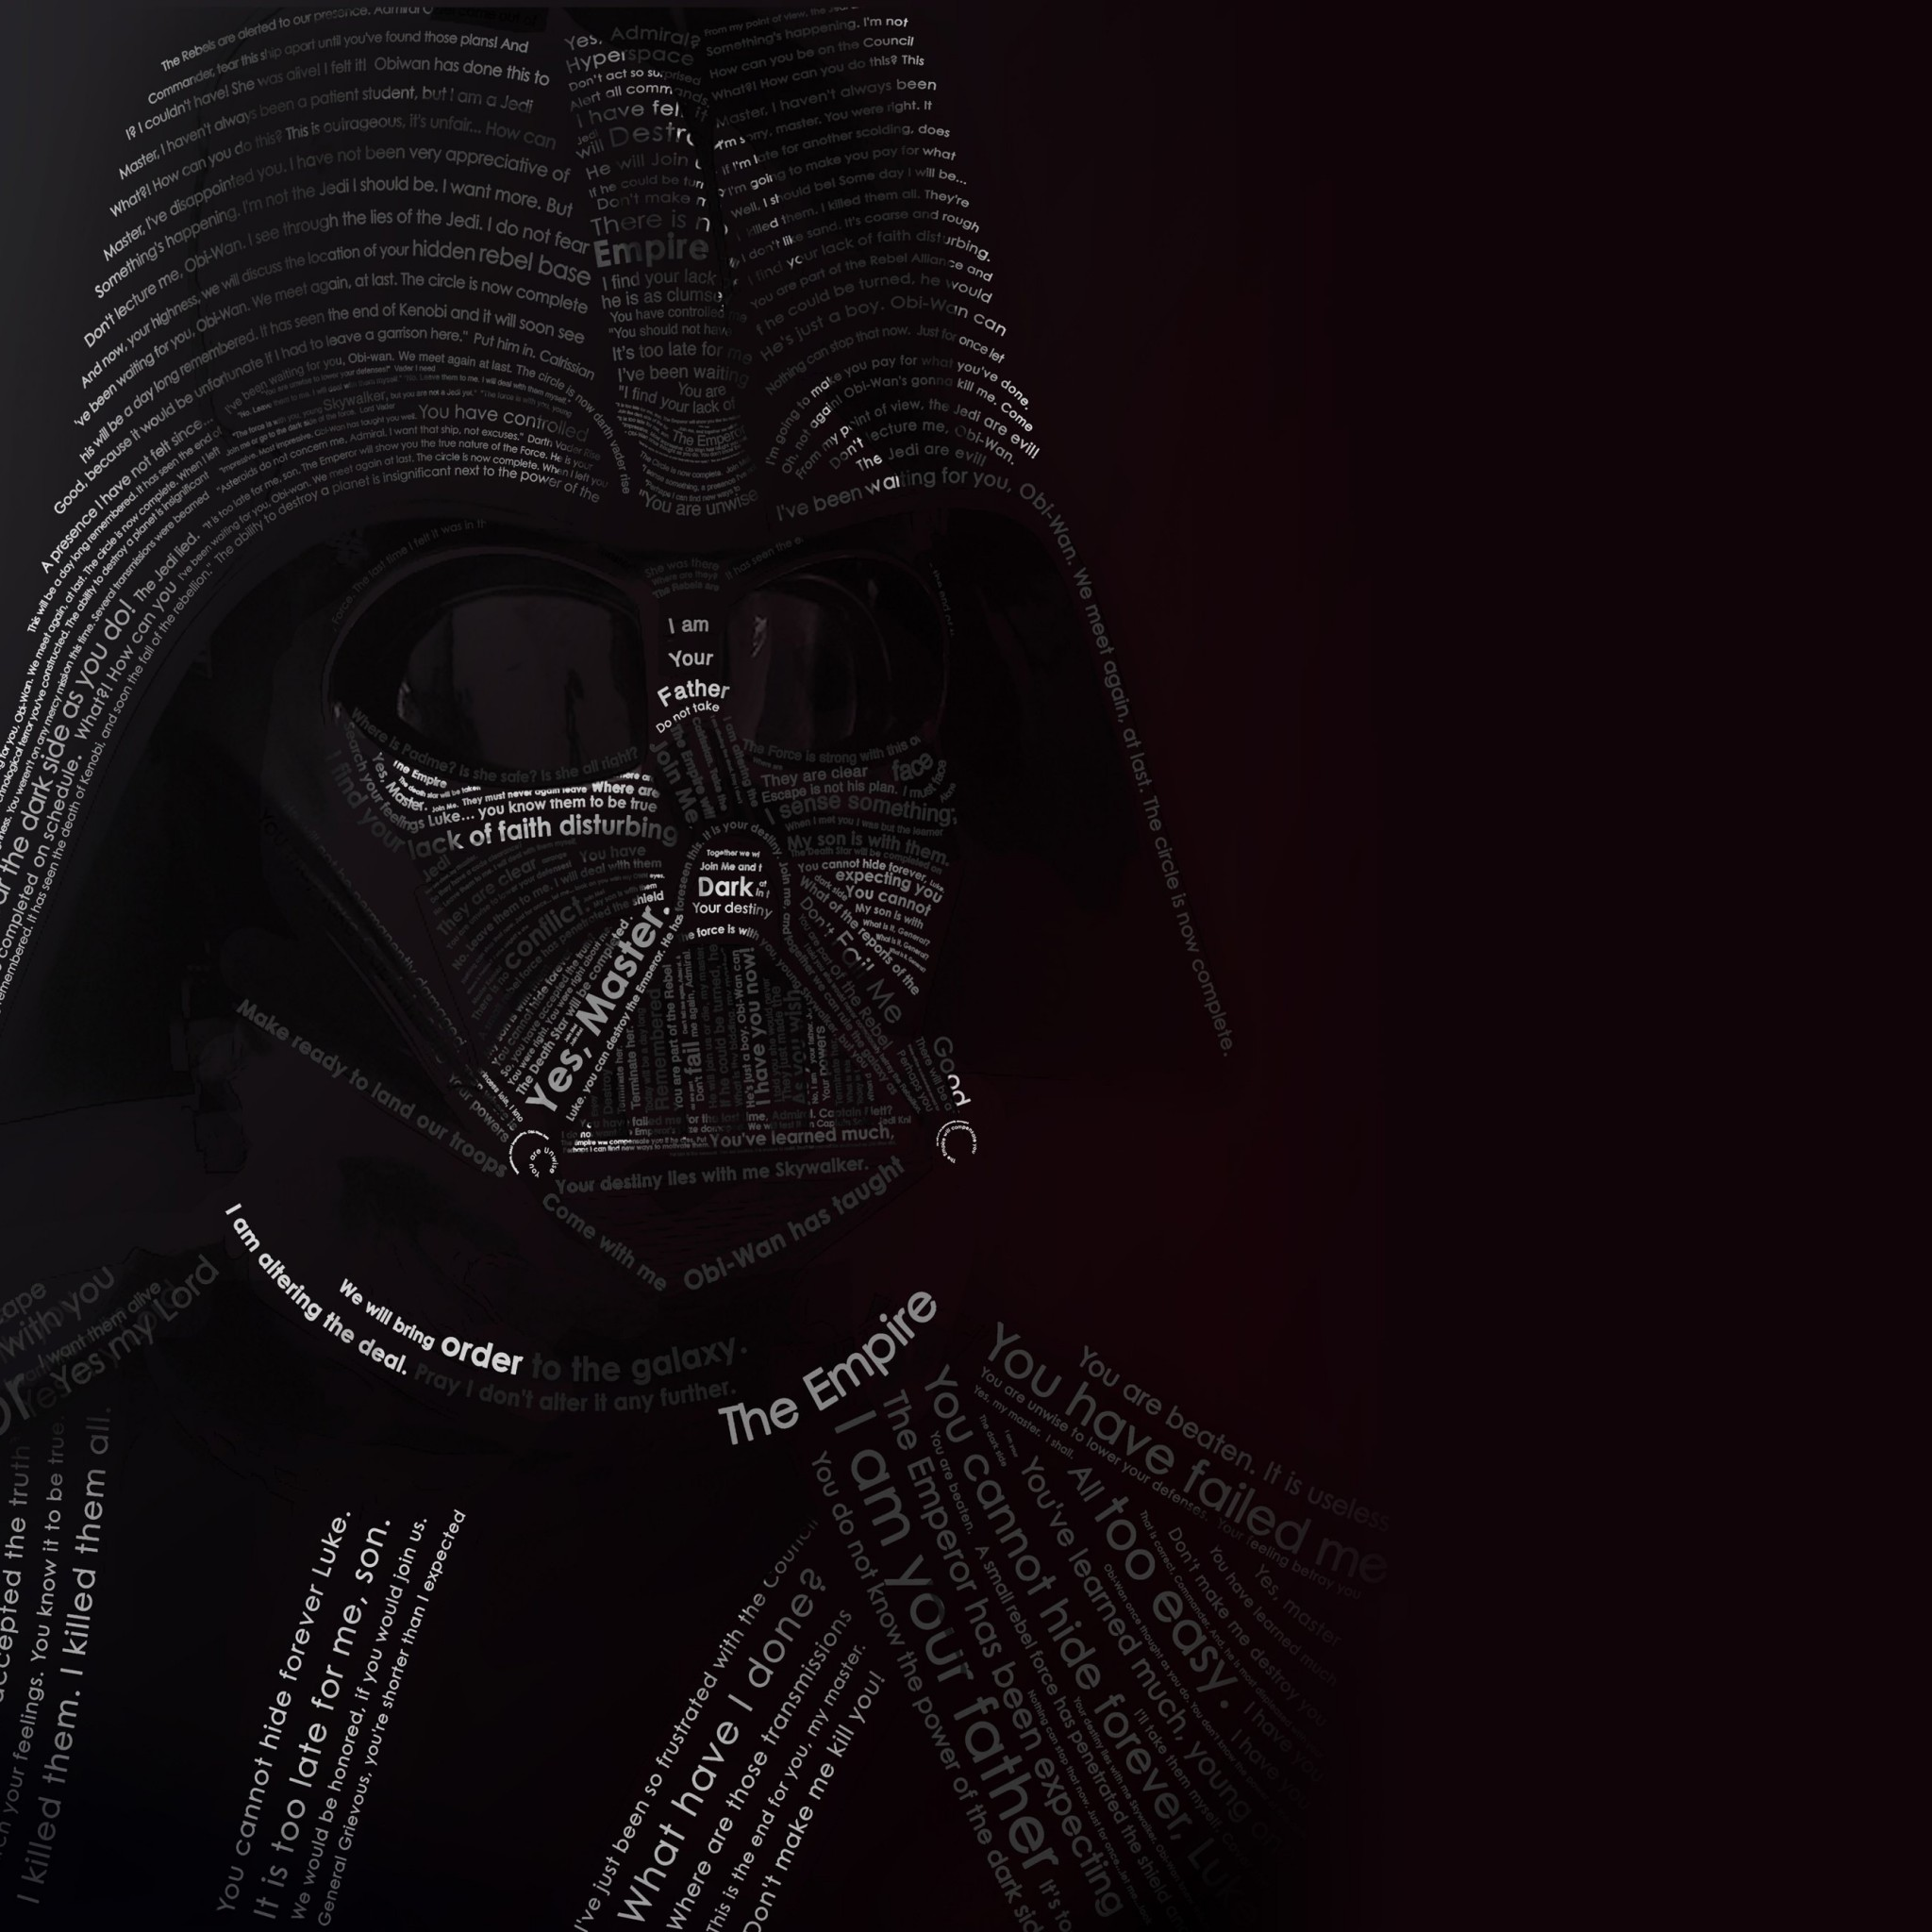 Darth Vader Typographic Portrait Wallpaper for Google Nexus 9